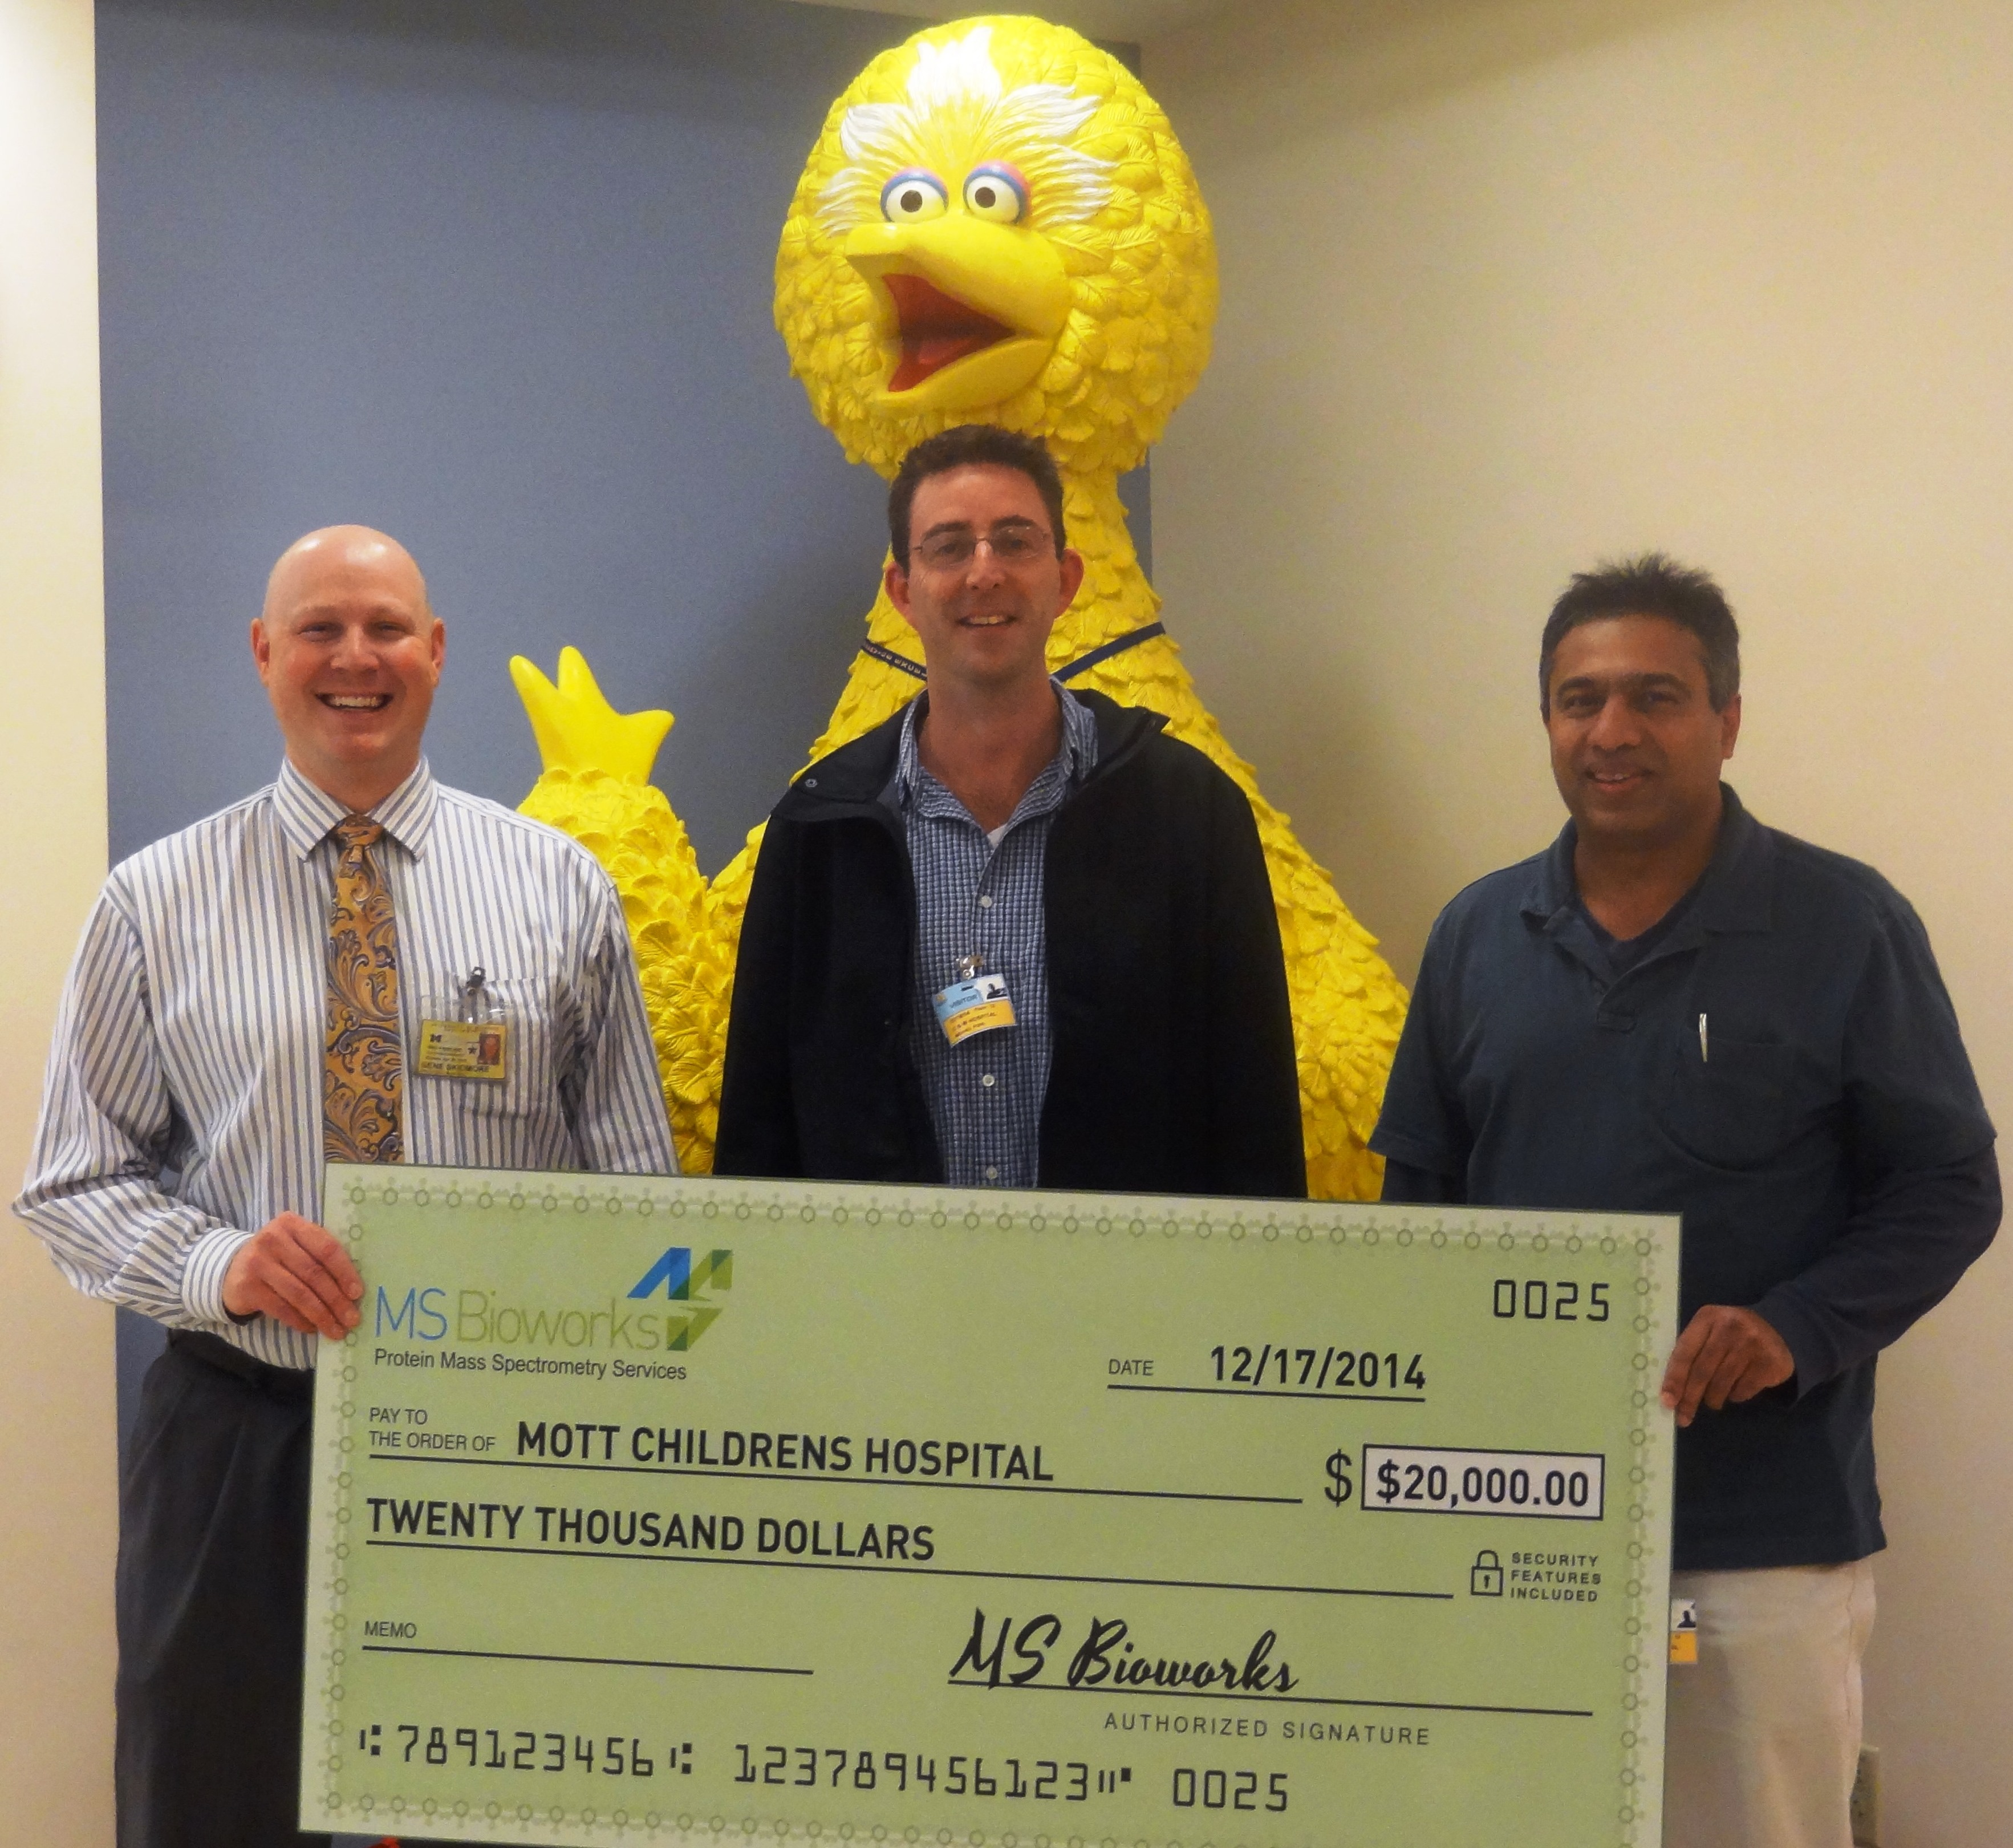 Annual Donation To C S Mott Children S Hospital Ms Bioworks